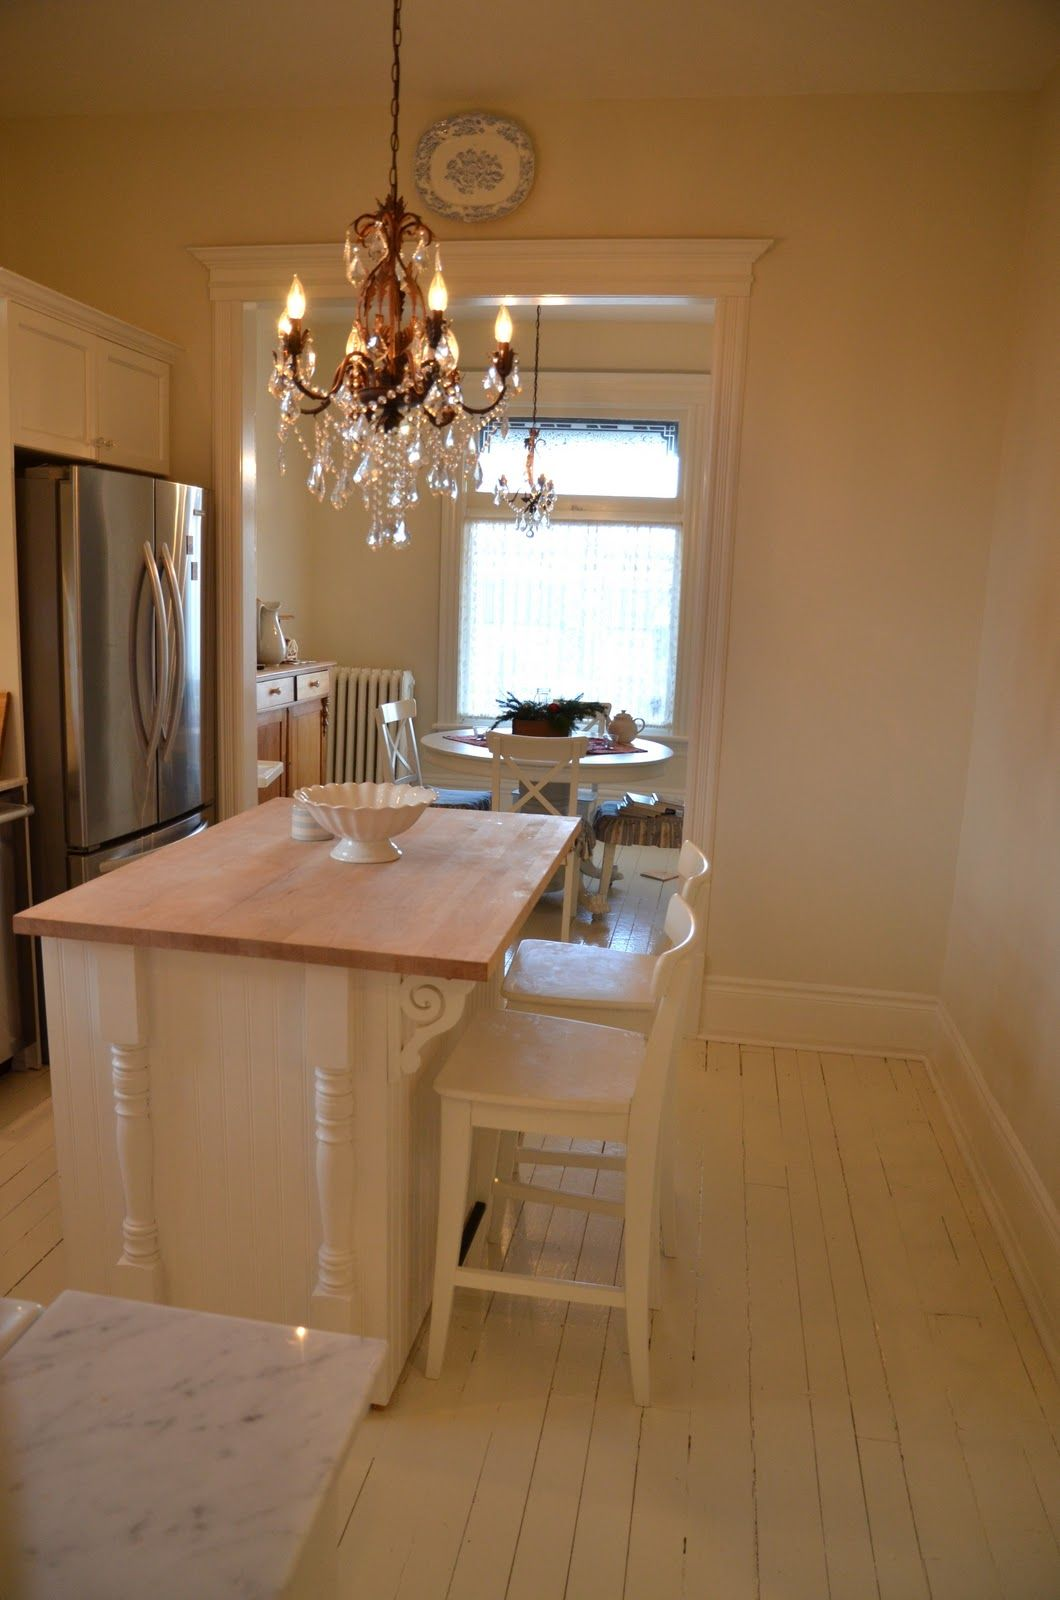 Best Walls Are Ballet White By Benjamin Moore Floors Are Grey 400 x 300